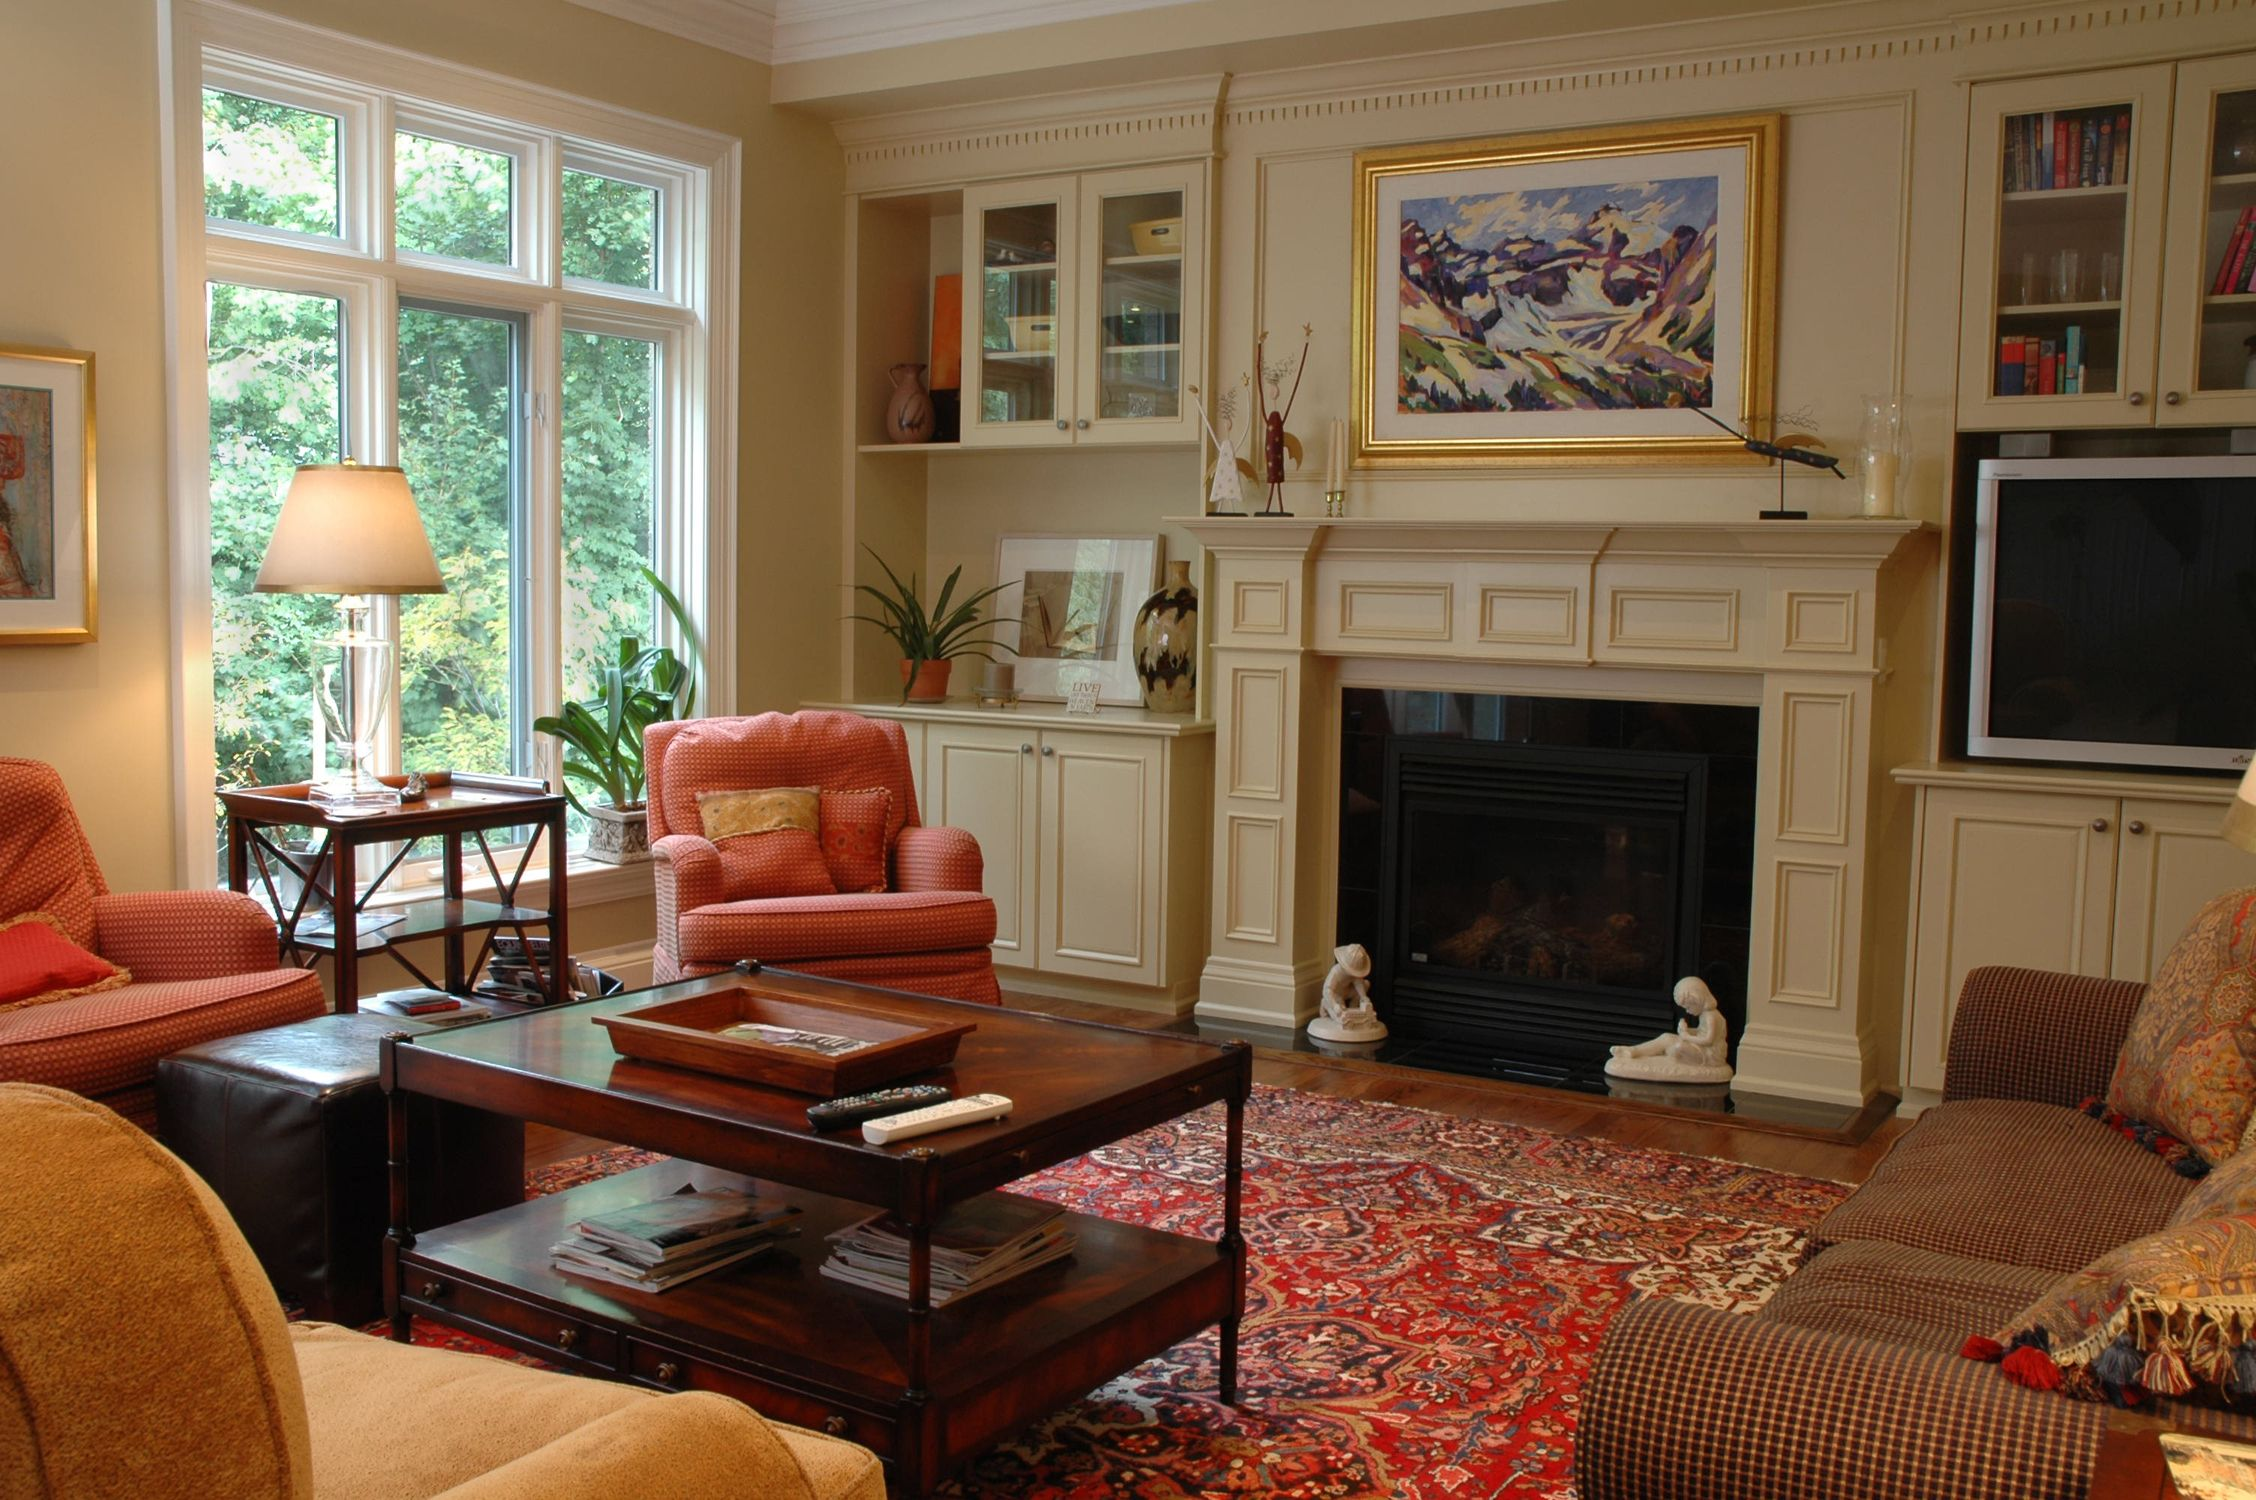 16' x 16' living room space with fireplace - Bing Images ...